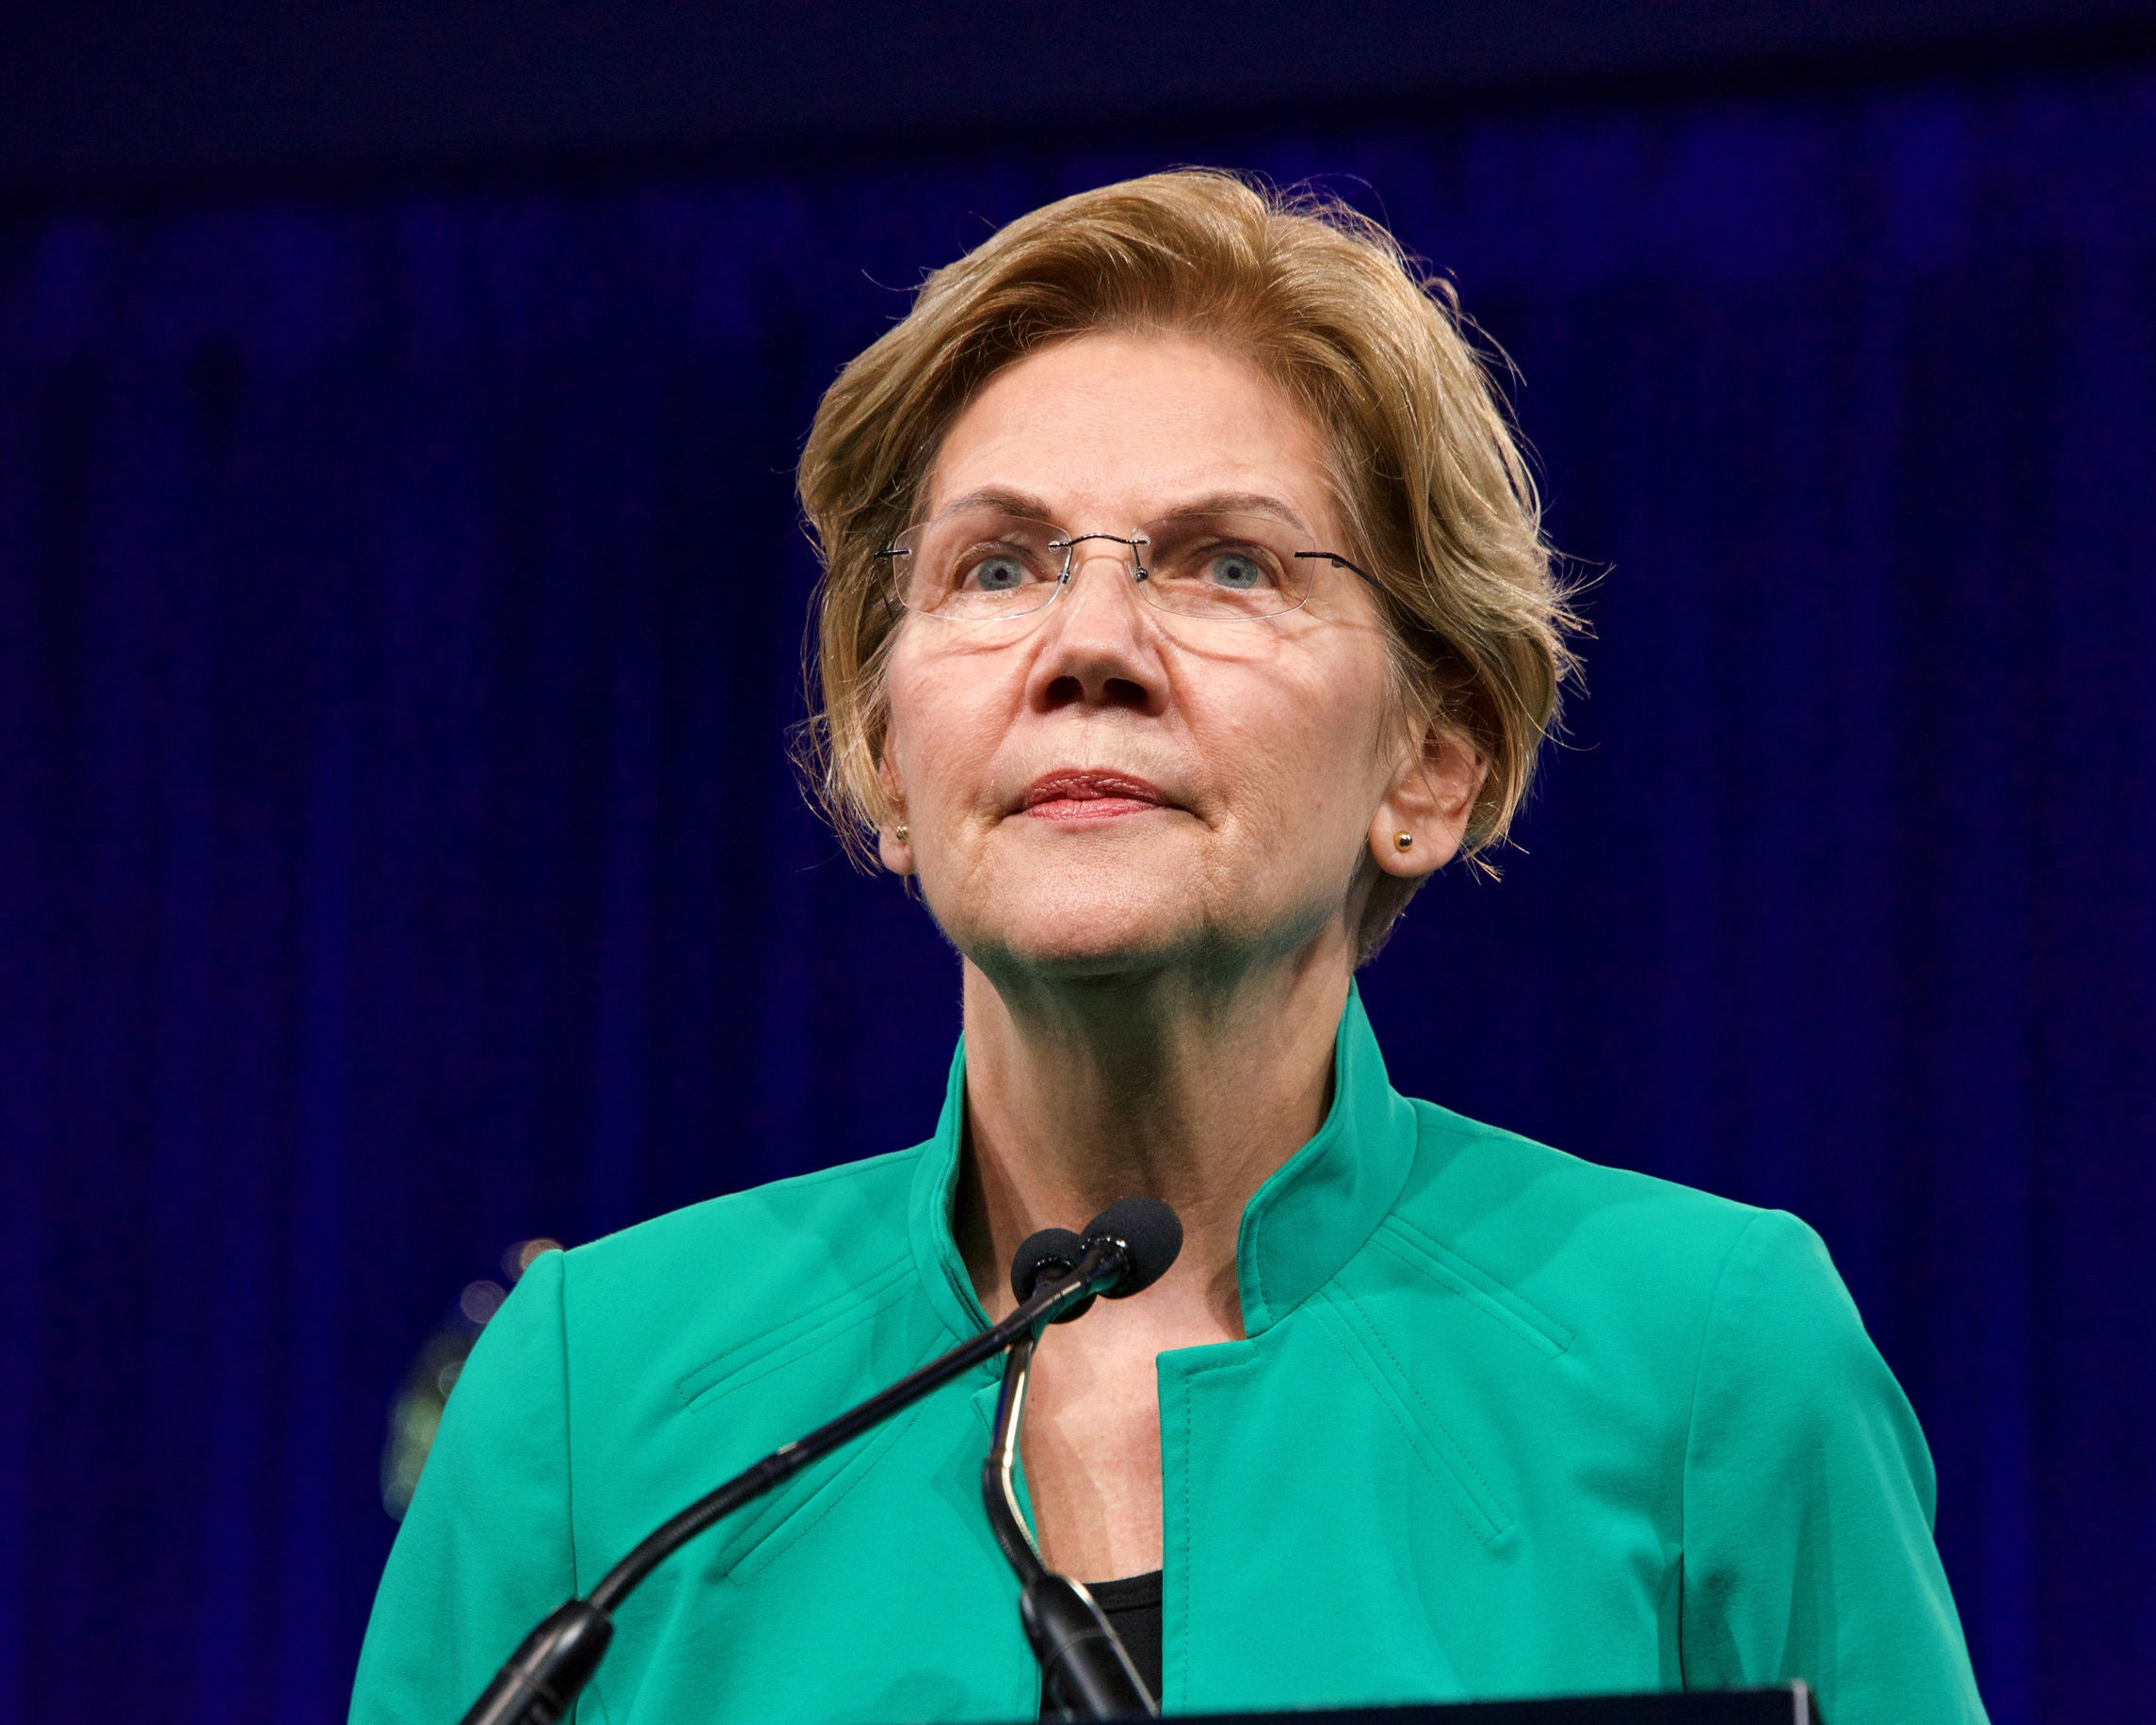 August 23, 2019: Presidential candidate Elizabeth Warren speaking at the Democratic National Convention in San Francisco